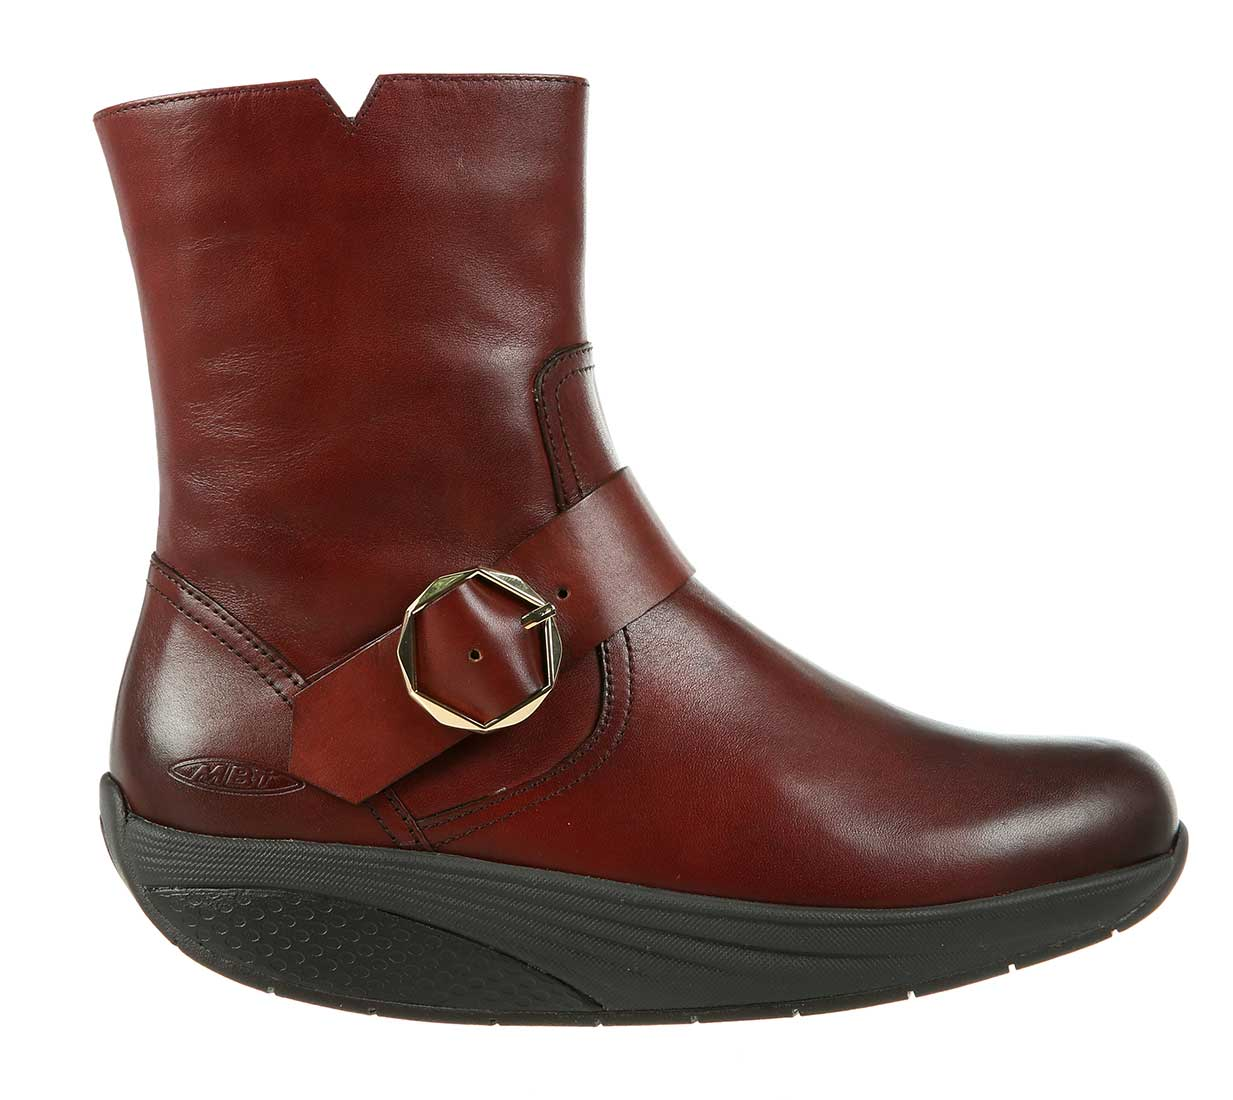 dab5bc067b62 ... MBT Shoes Women s Magee Dress Boots - Burnished Dark Brown Nappa ...